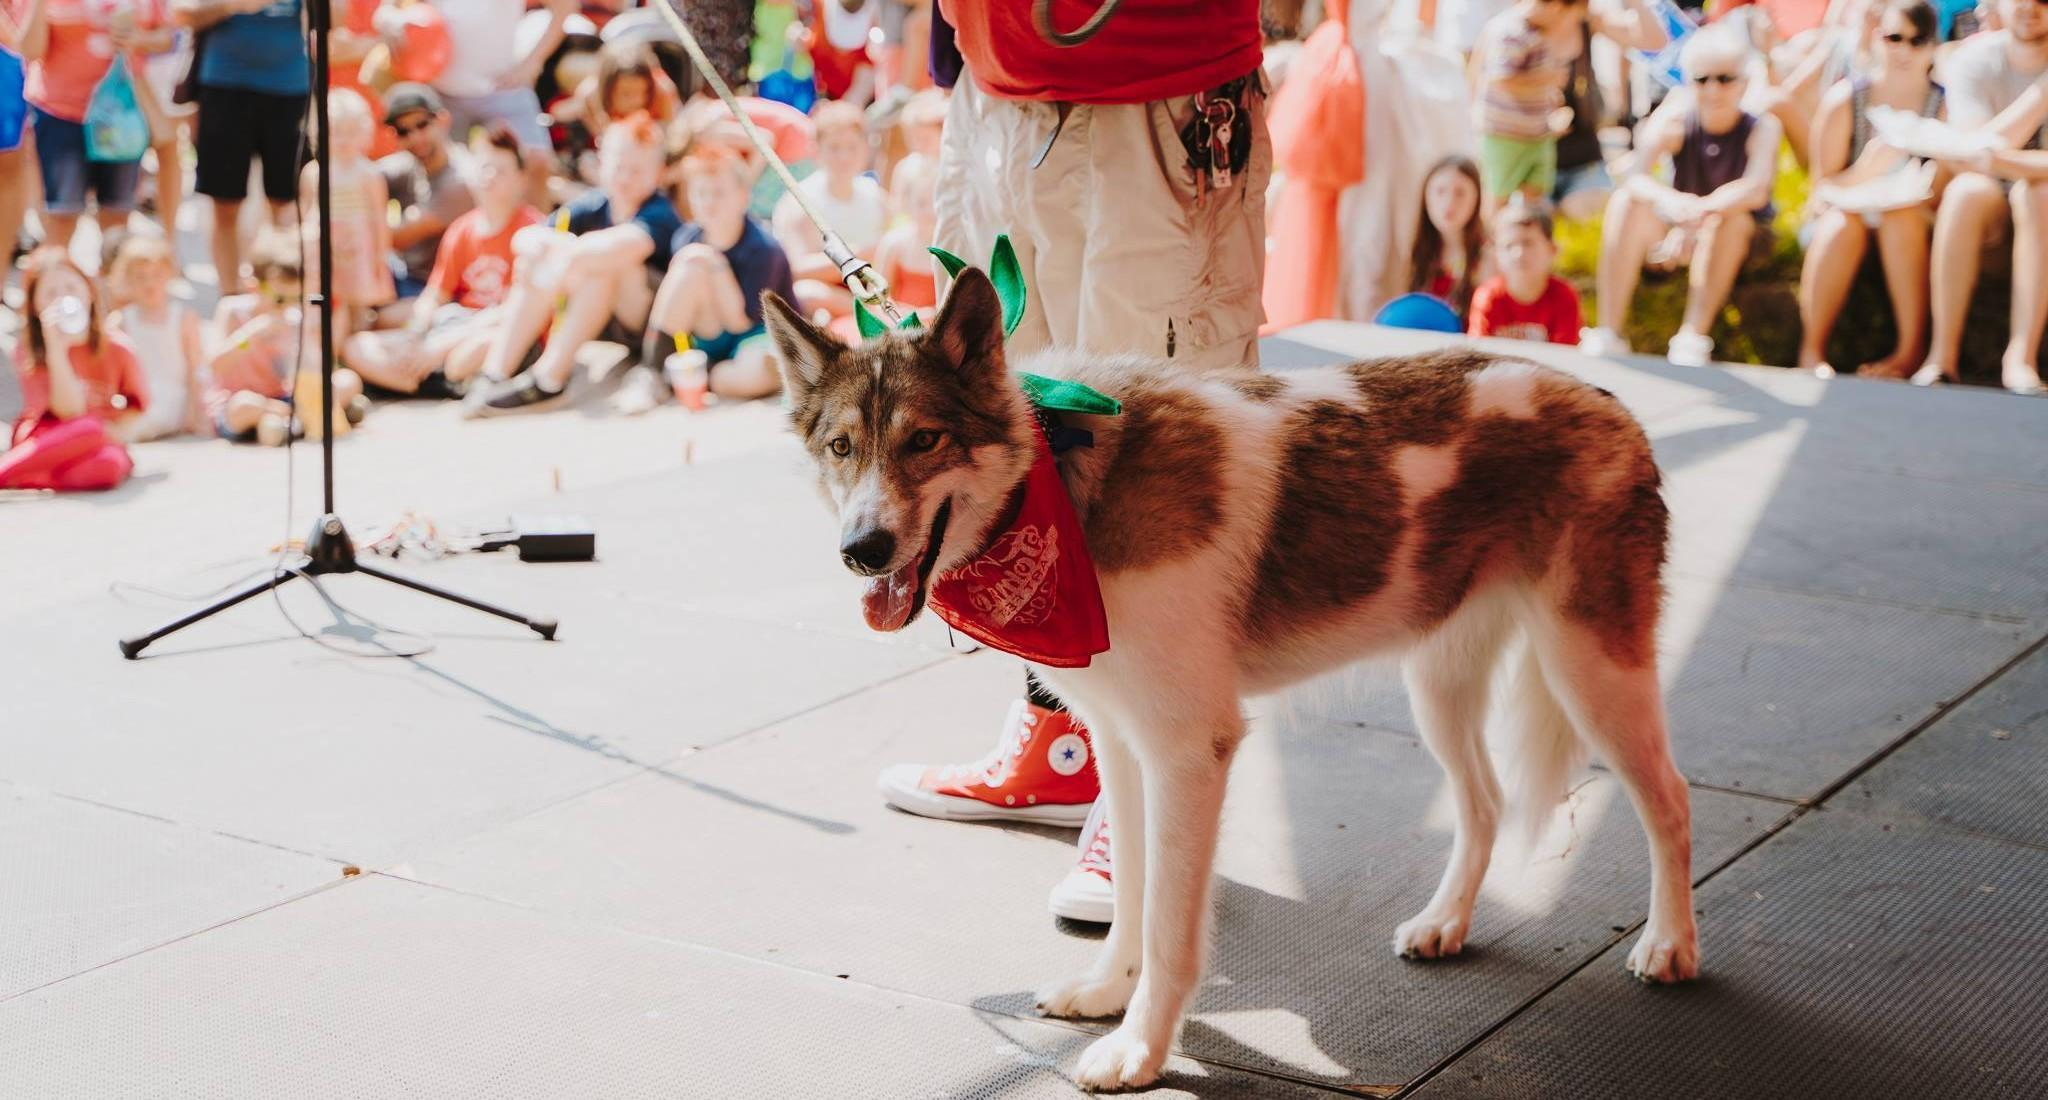 Bring Fido to these pet-friendly summer festivals.